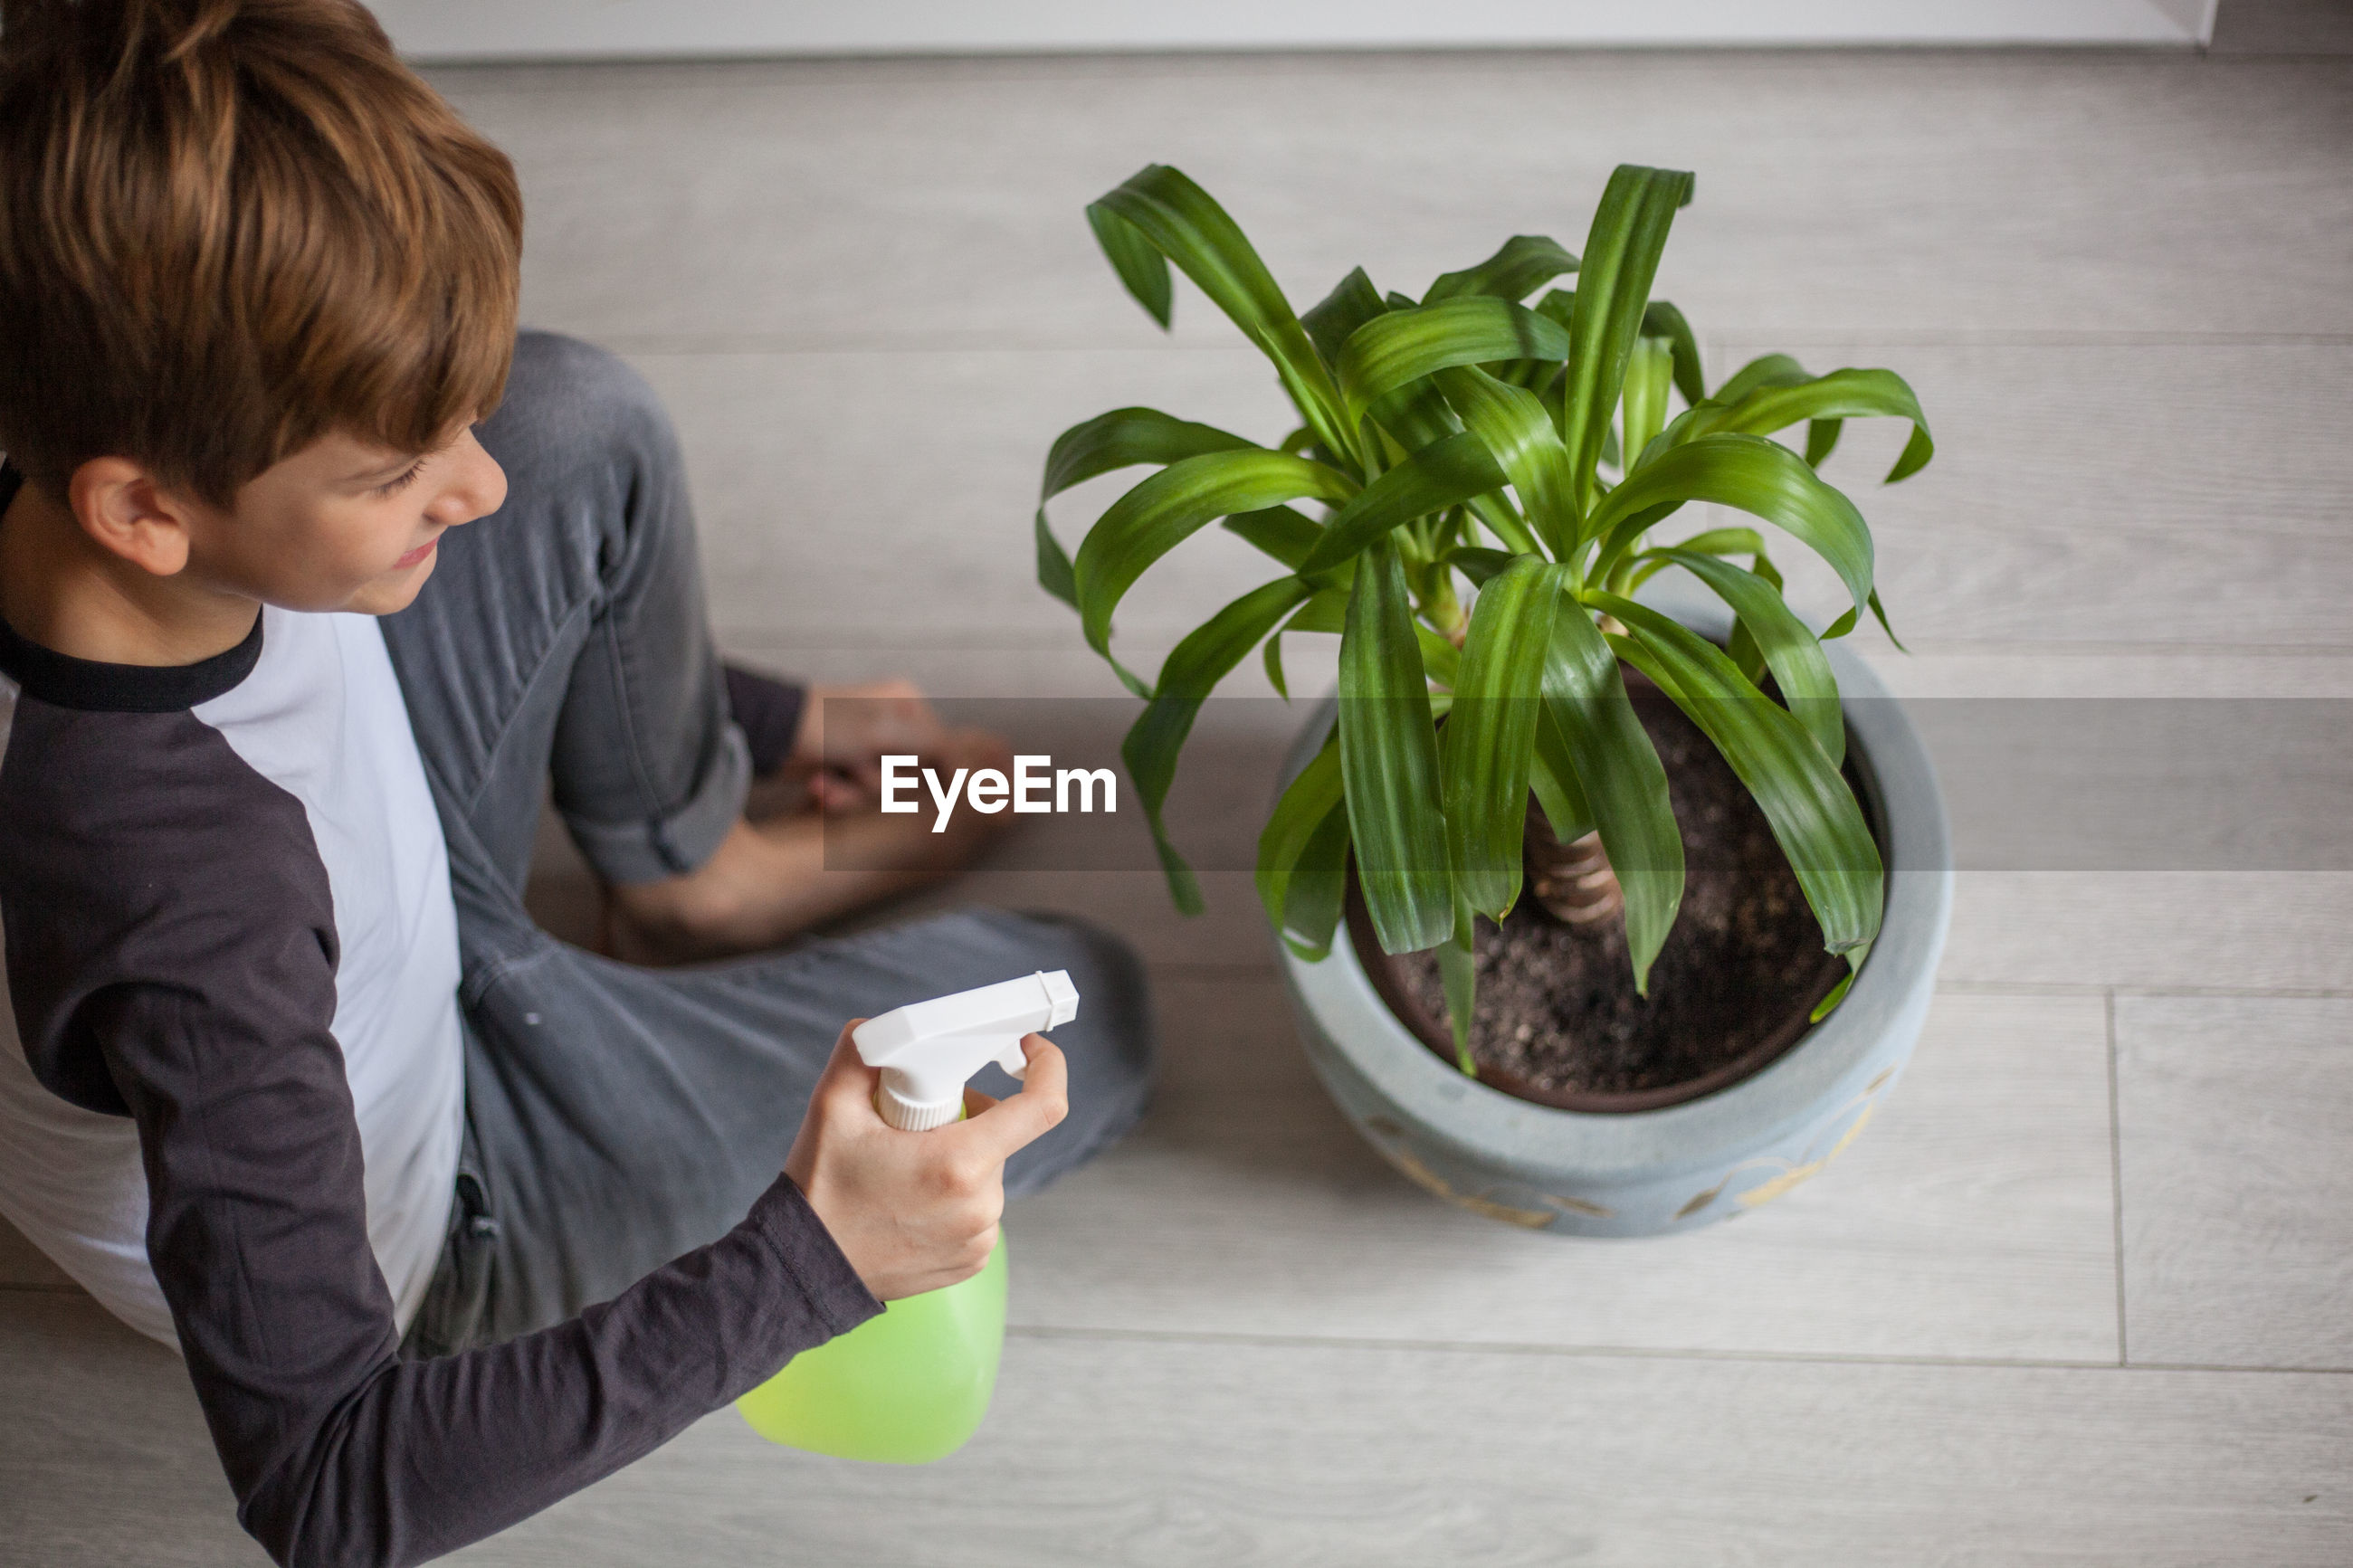 High angle view of boy watering a plant